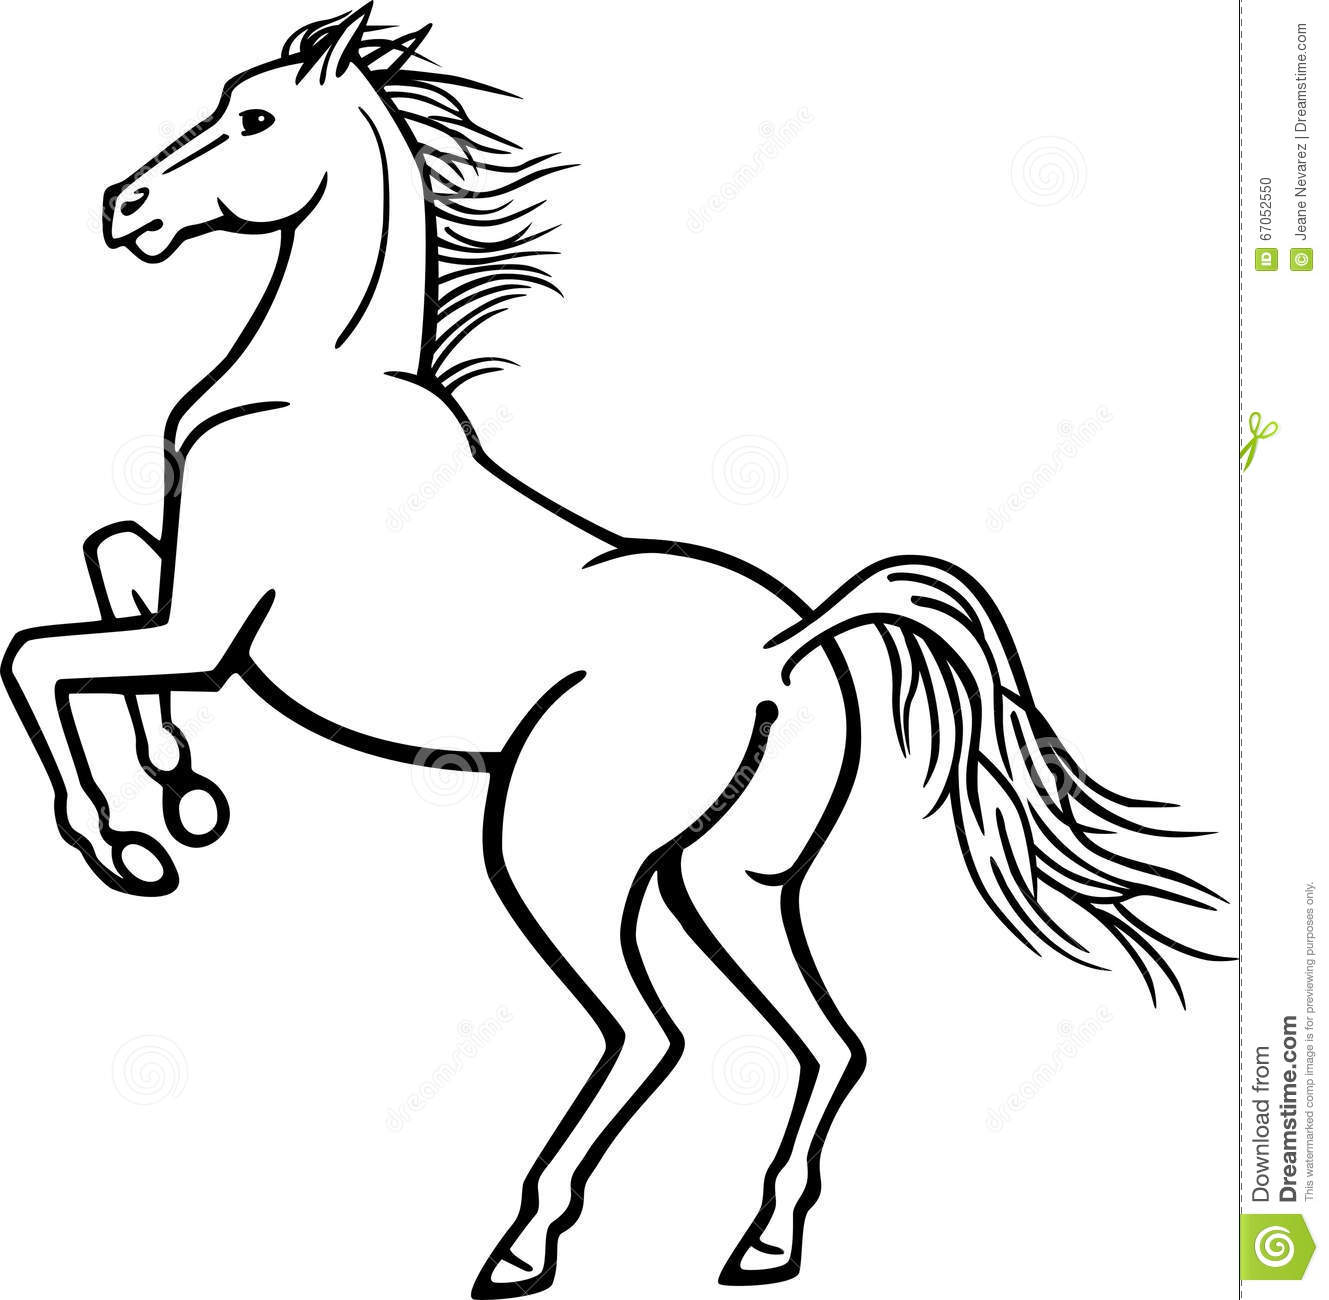 It is a picture of Transformative Horse Legs Drawing